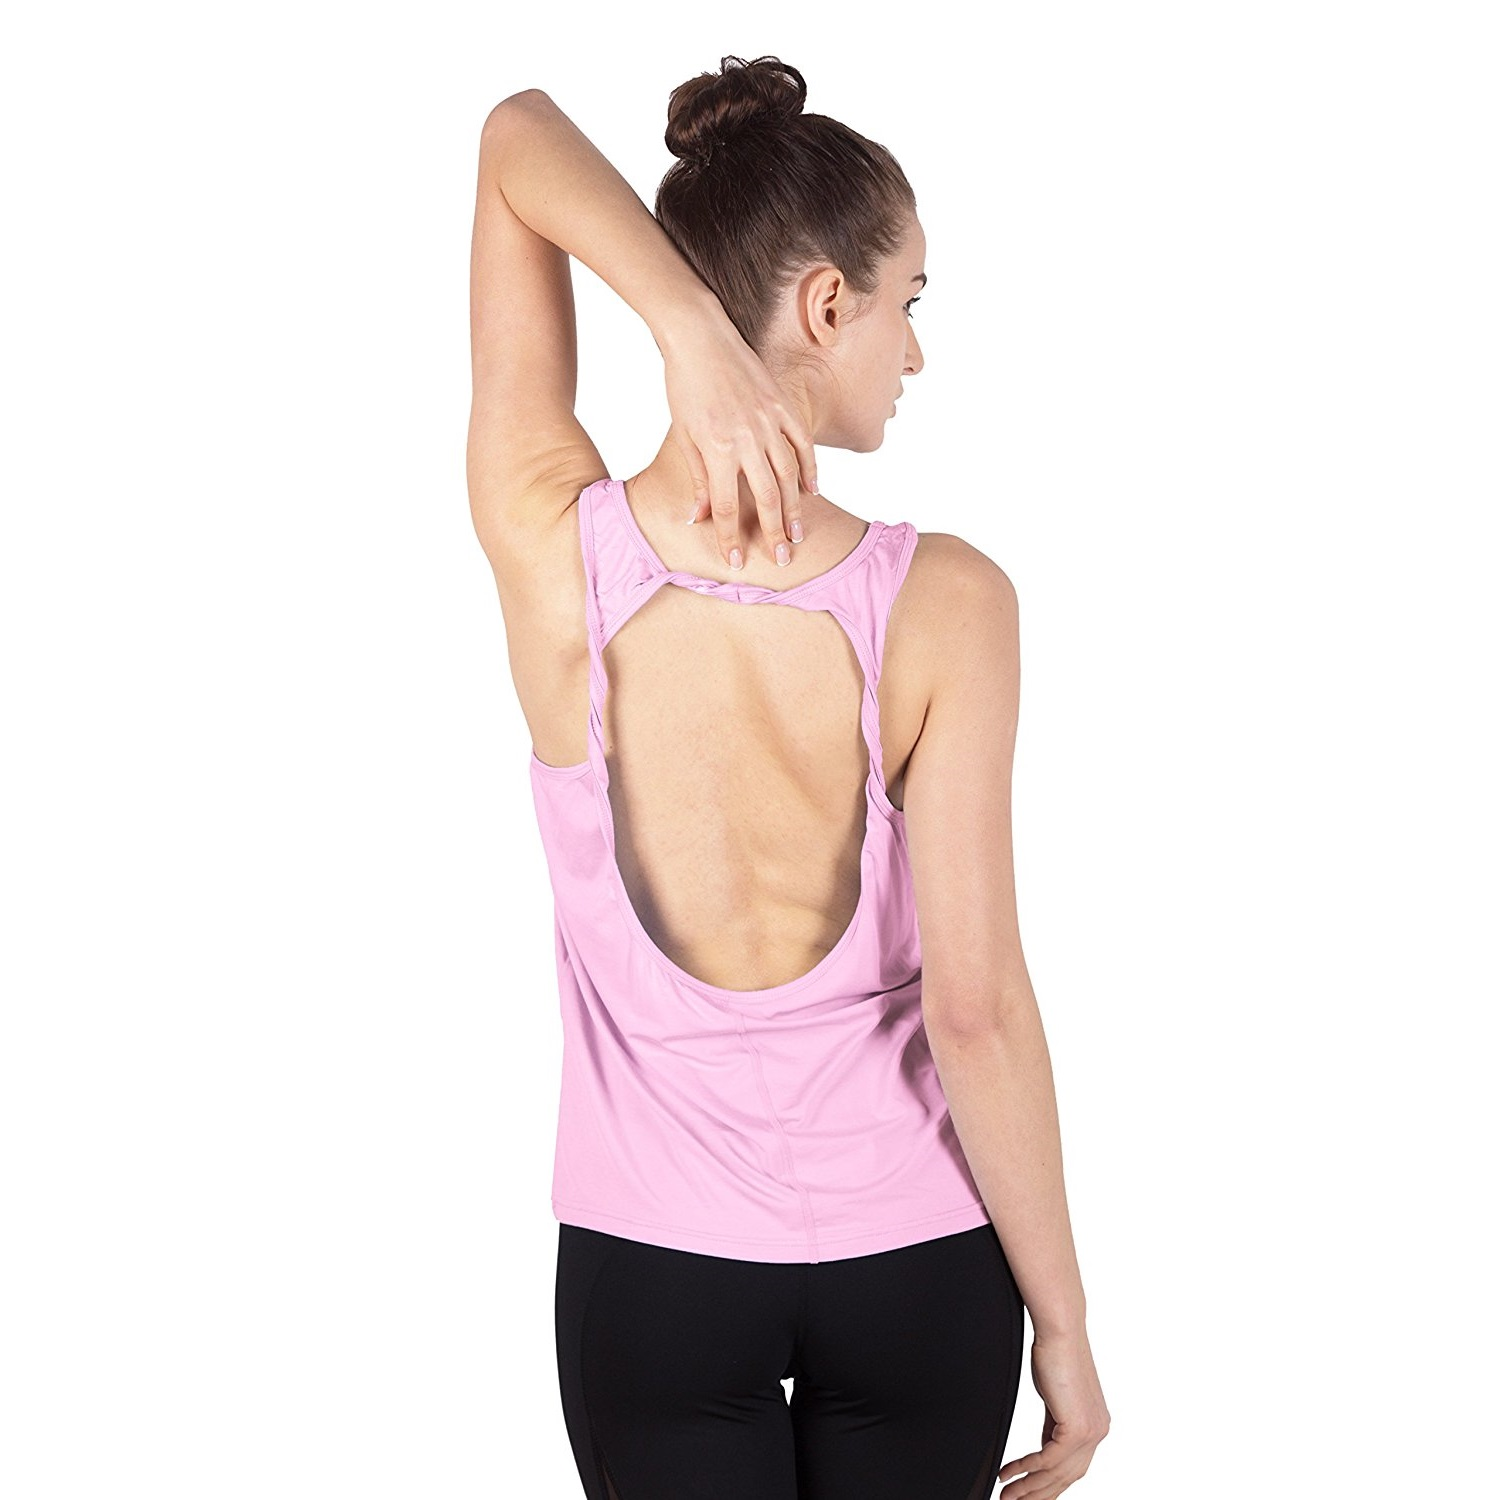 queenie ke womens light pink cowl back yoga shirt